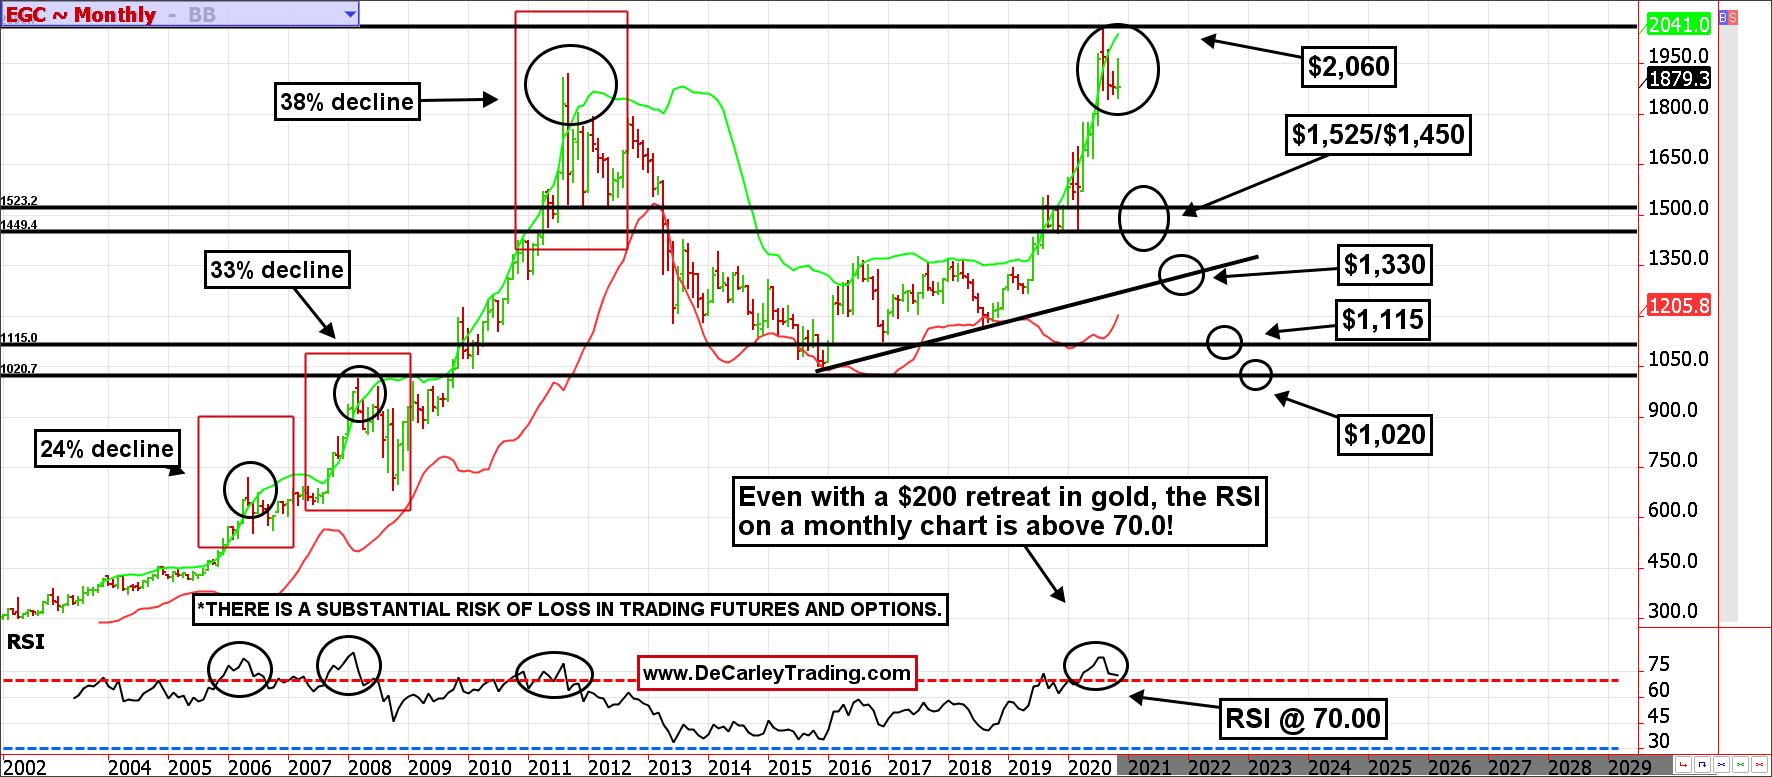 Gold futures technical analysis